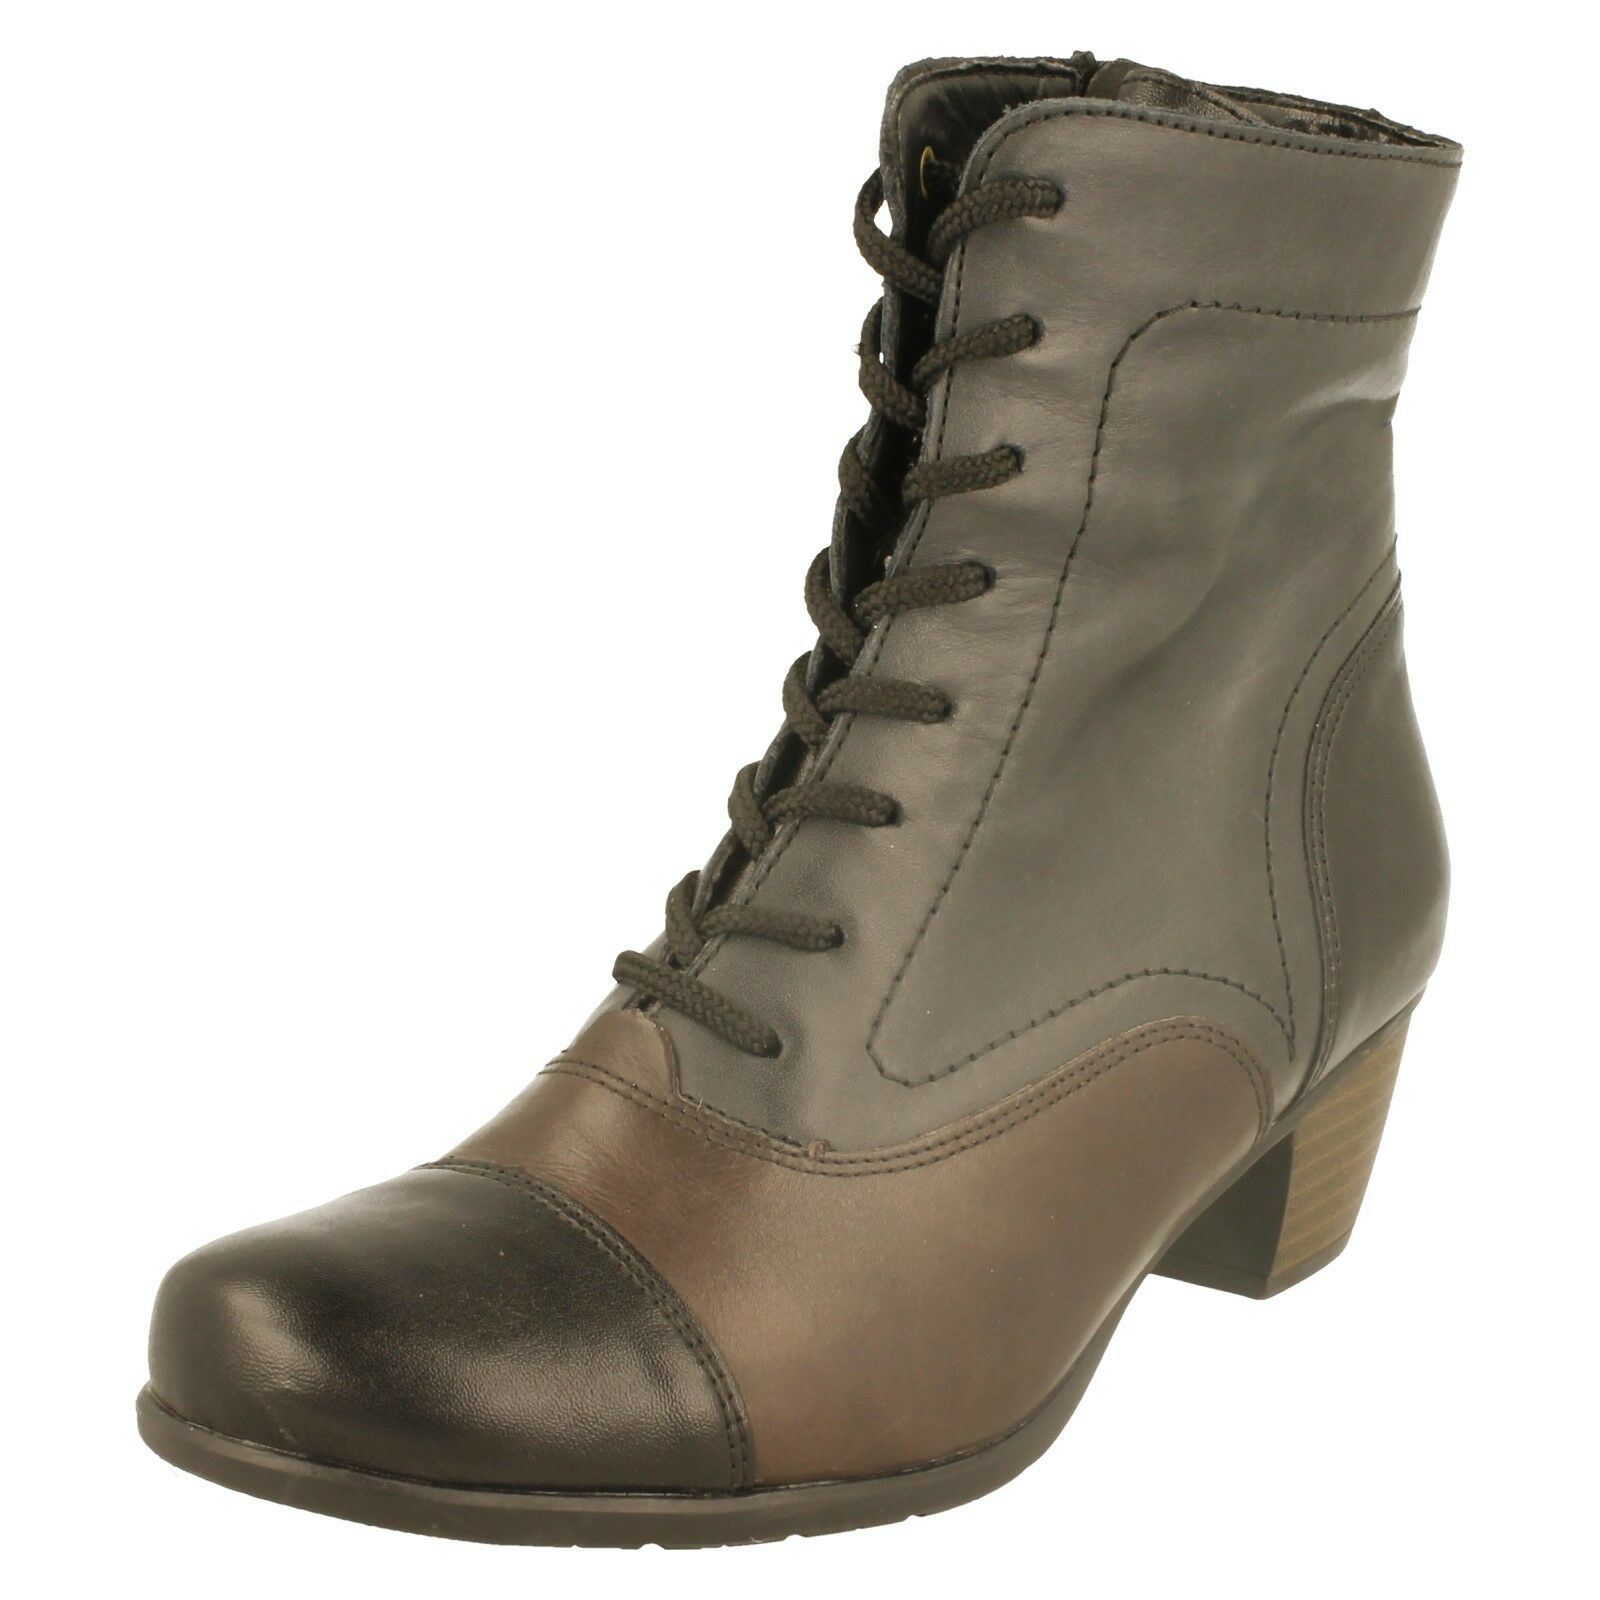 Ladies Remonte Ankle Boots - R9172